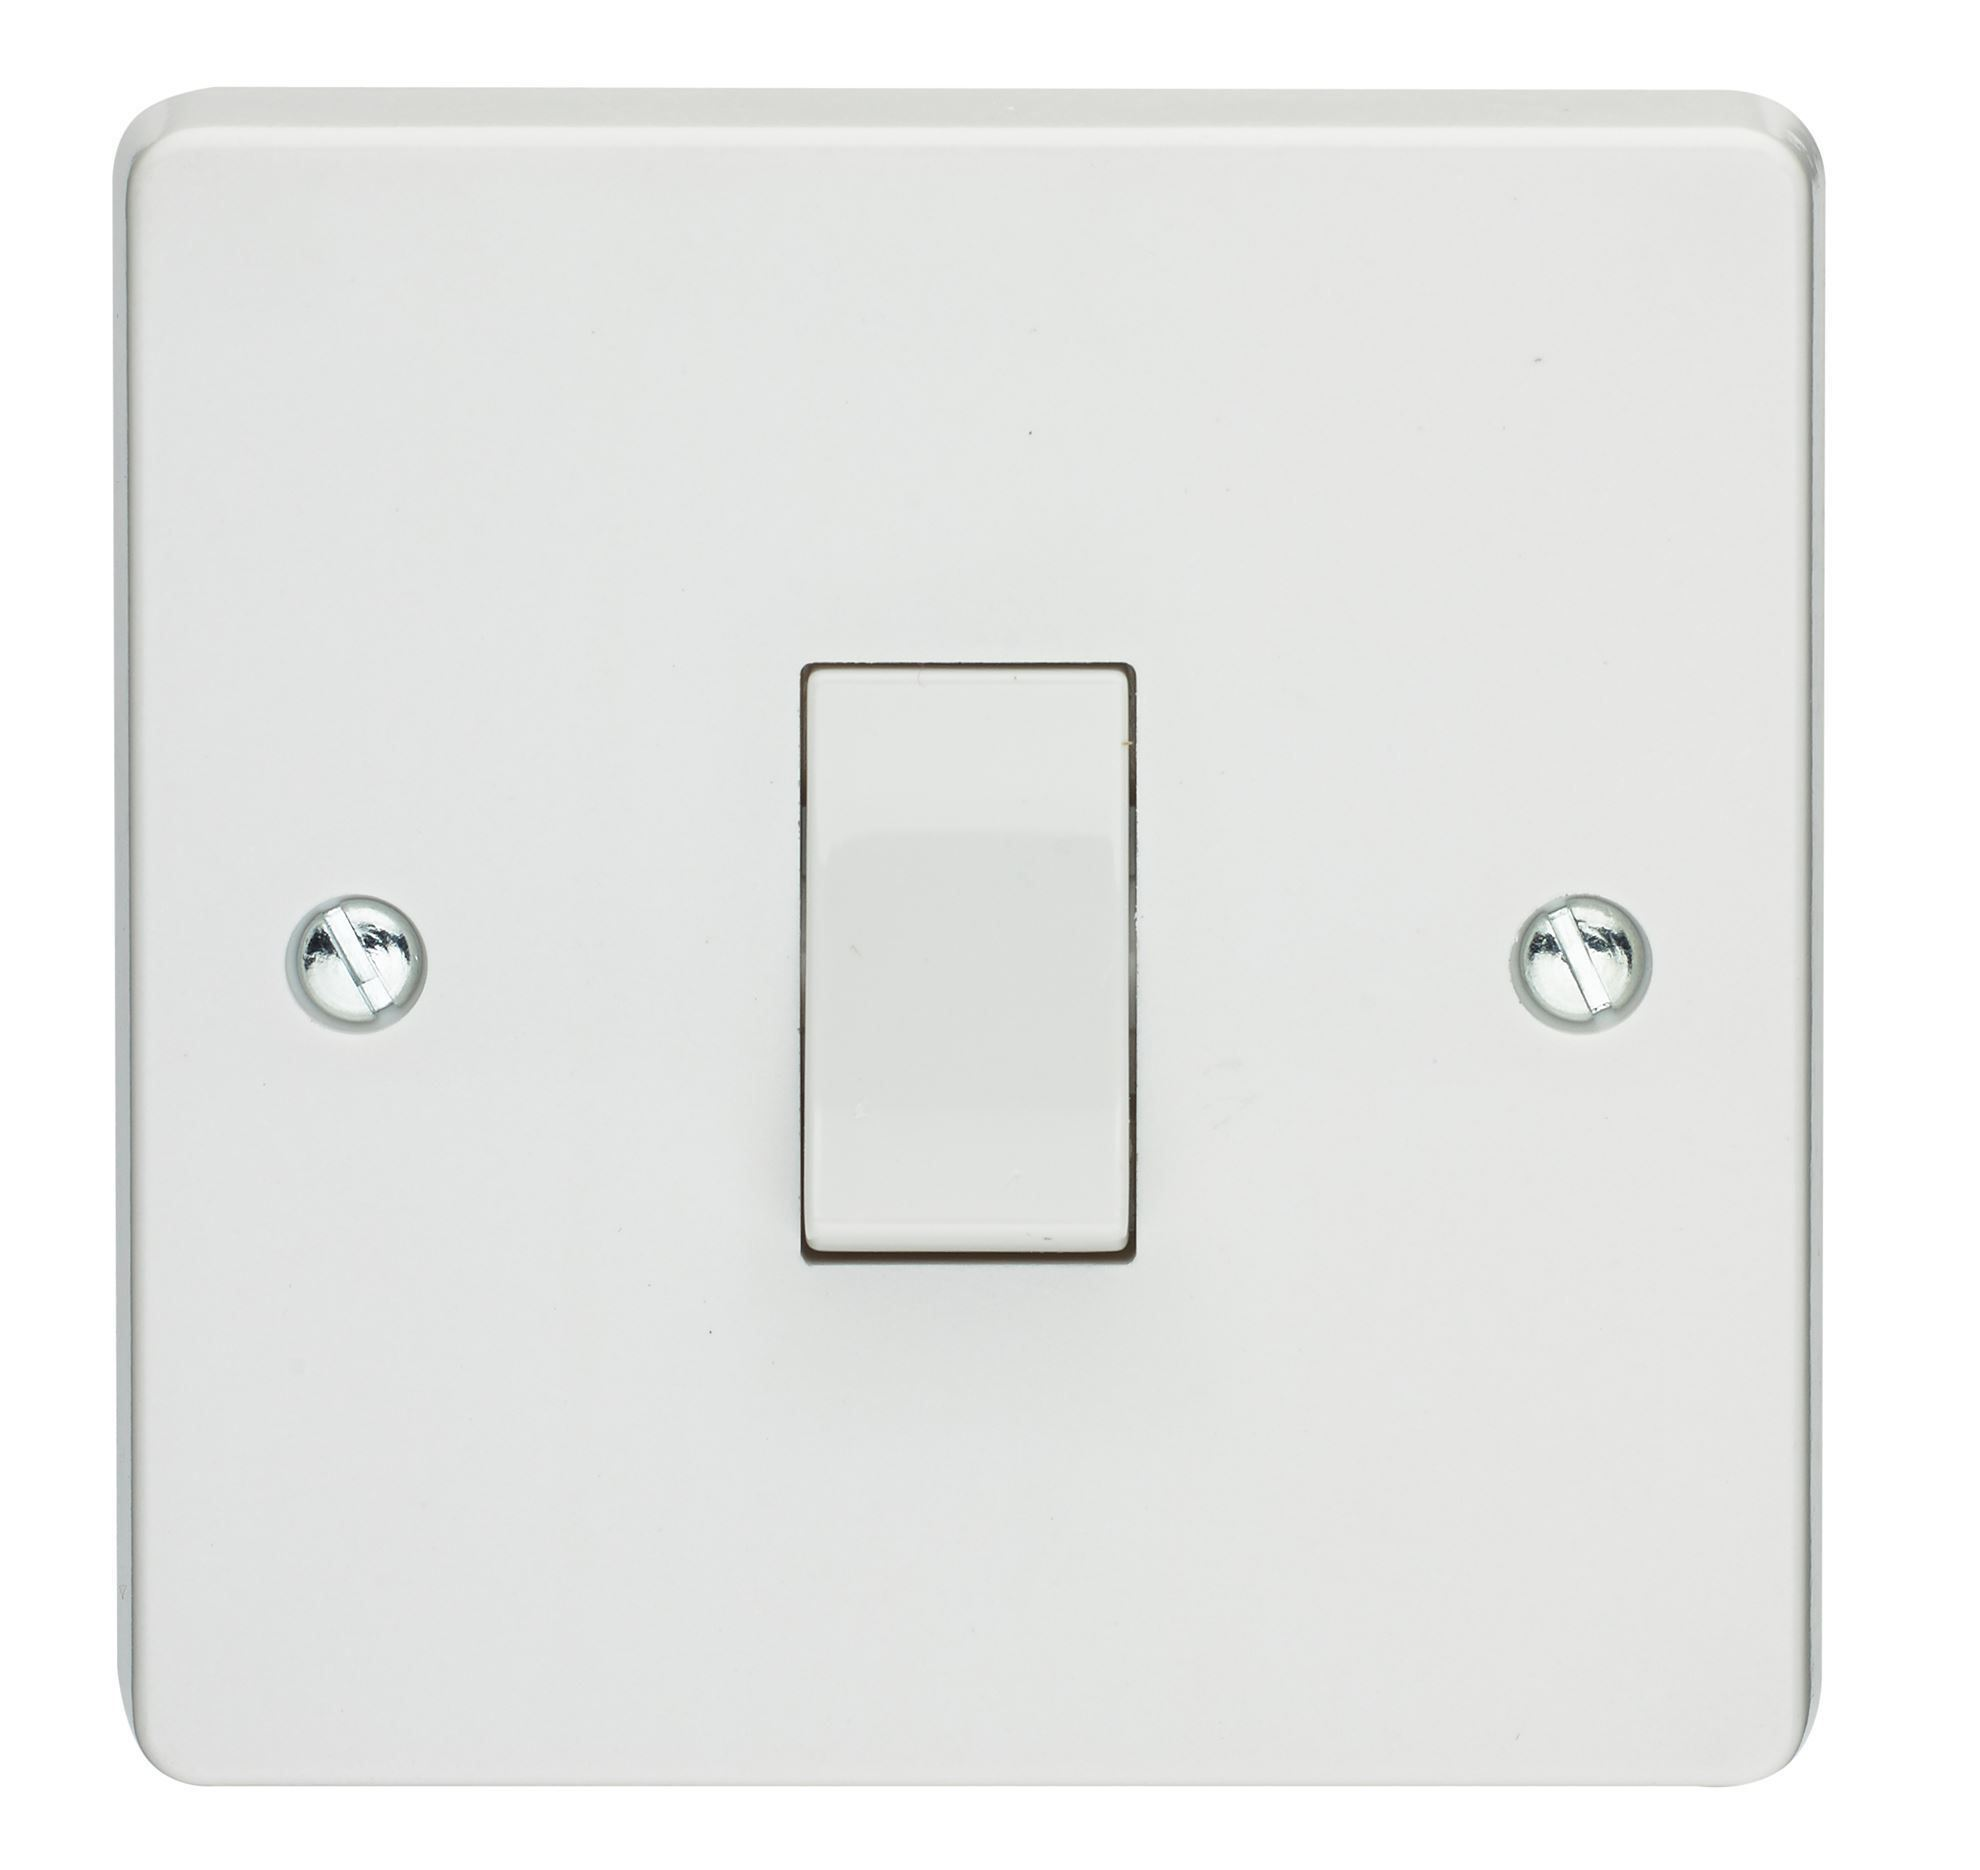 Crabtree 4304 White Moulded 1 Gang Single Pole Switchsocket 13A